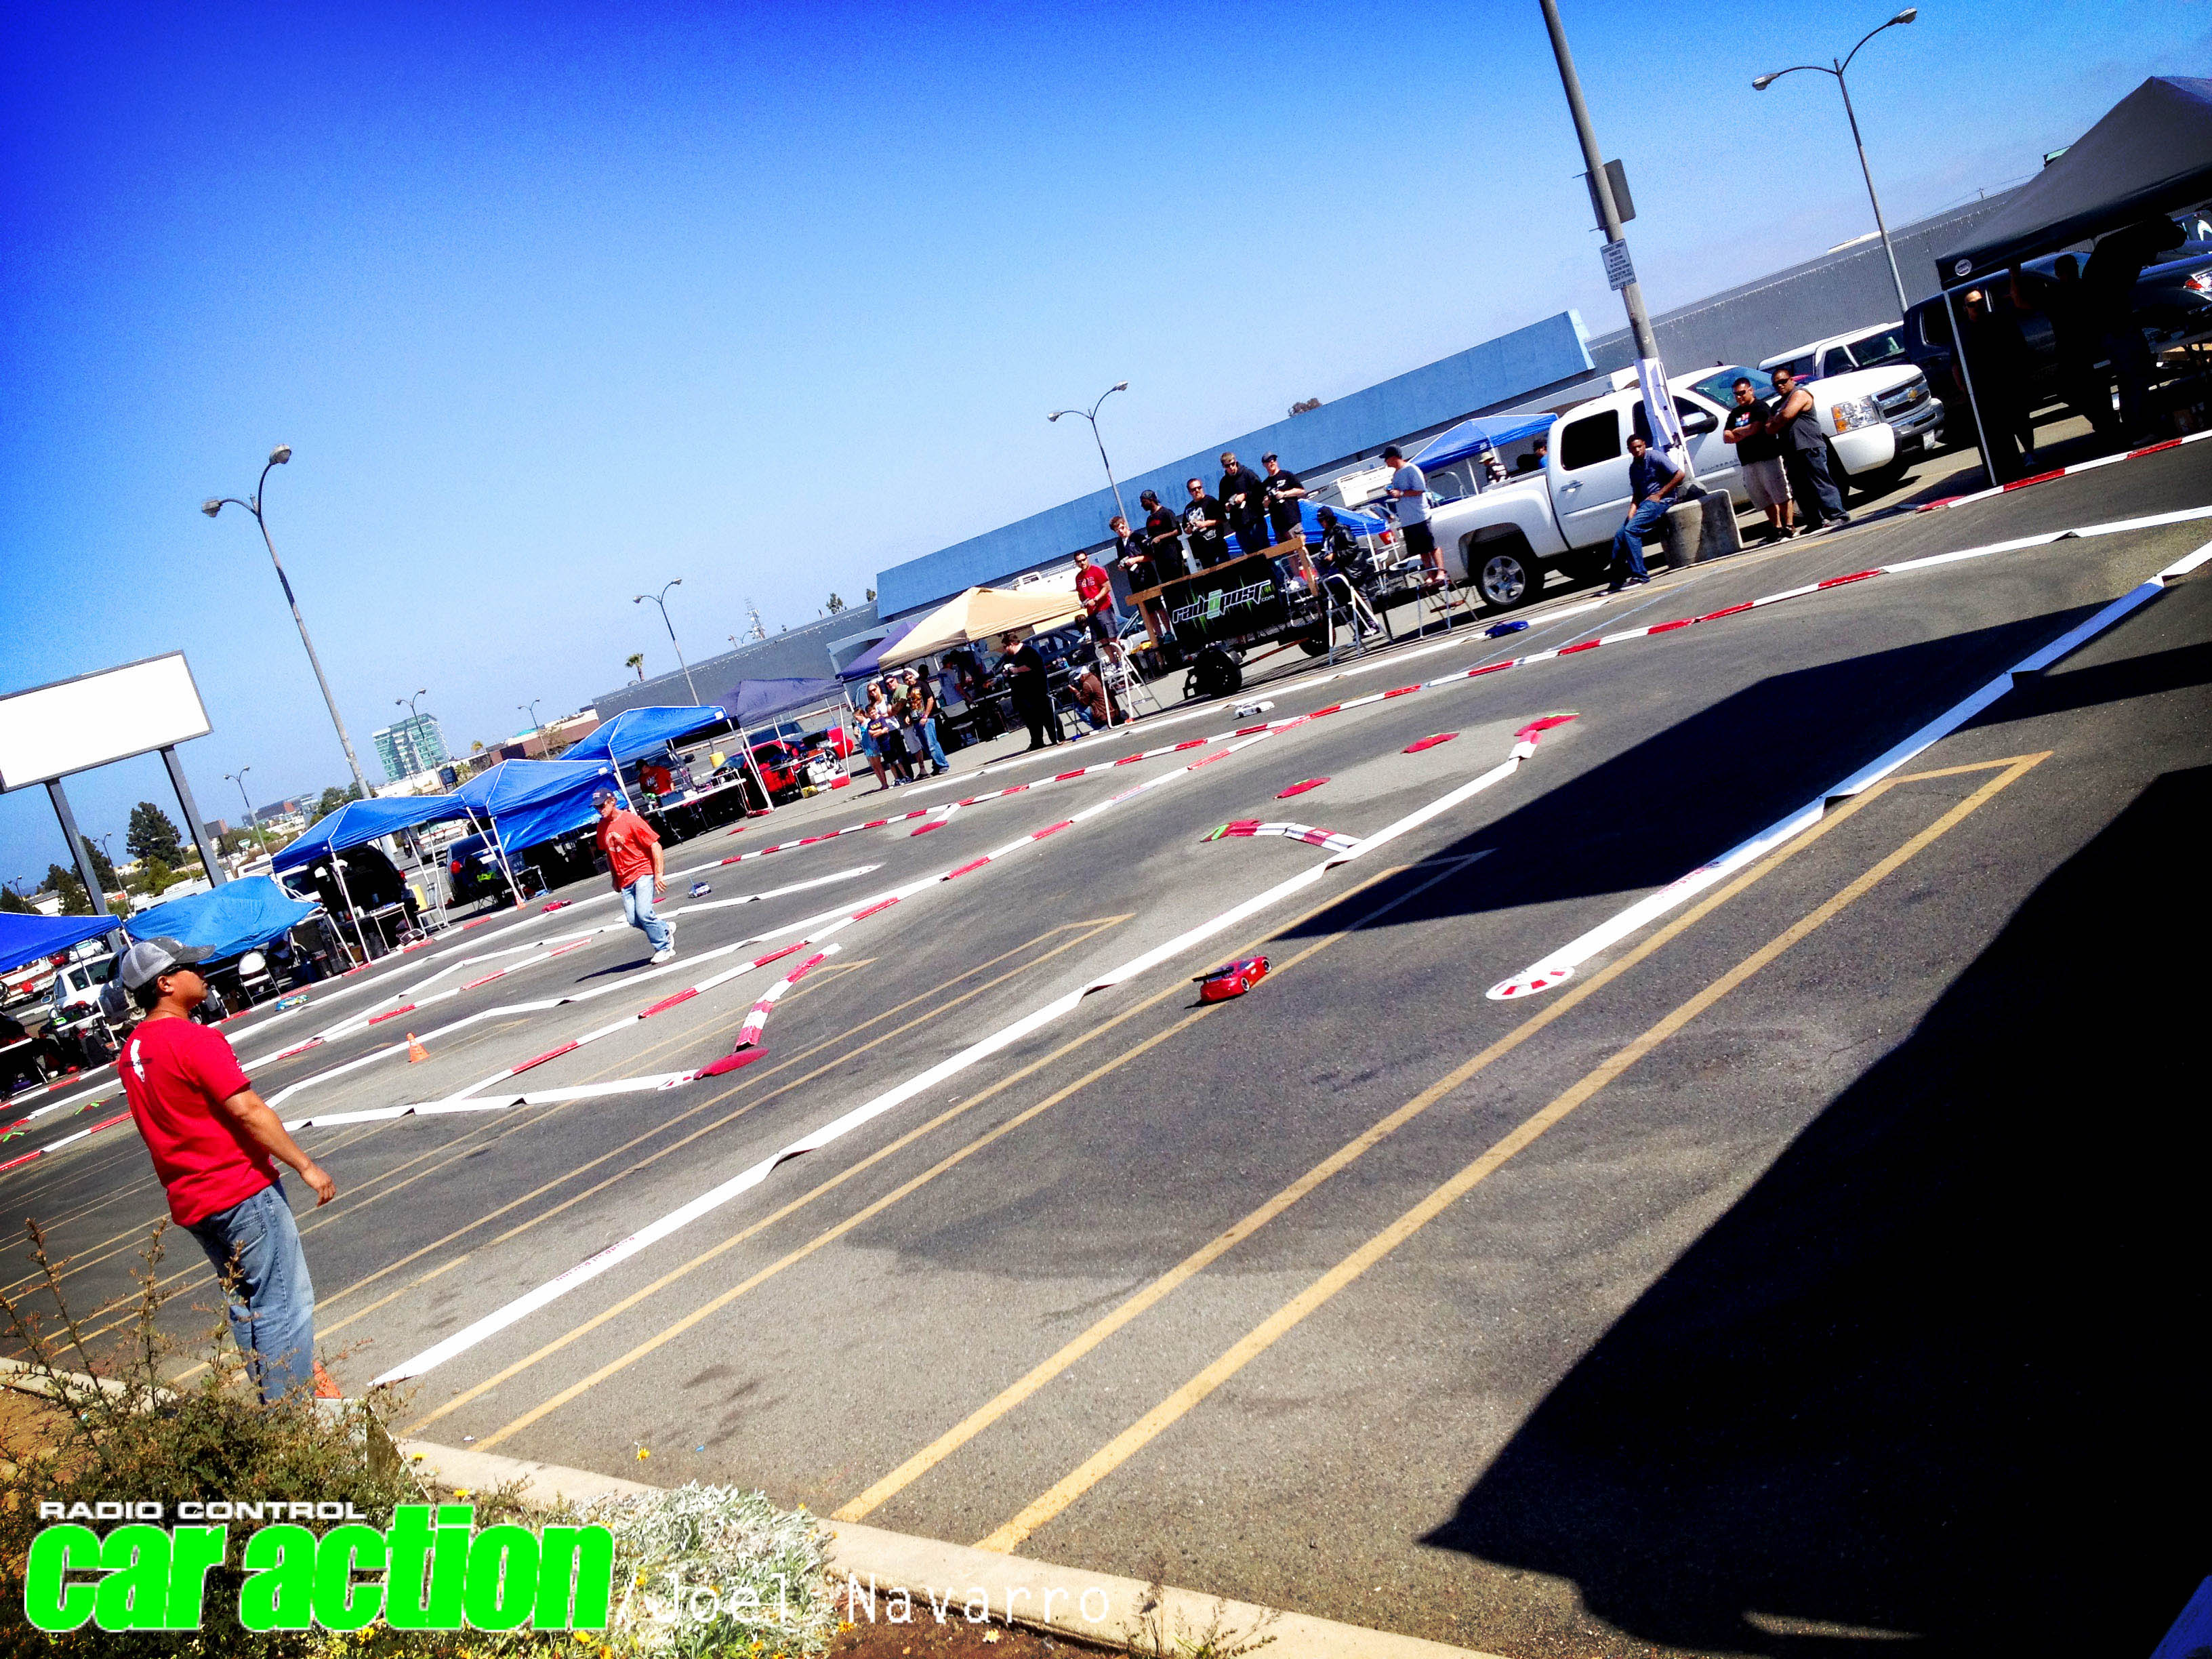 Parking Lot Racing is back in San Diego! [Video][Photos]